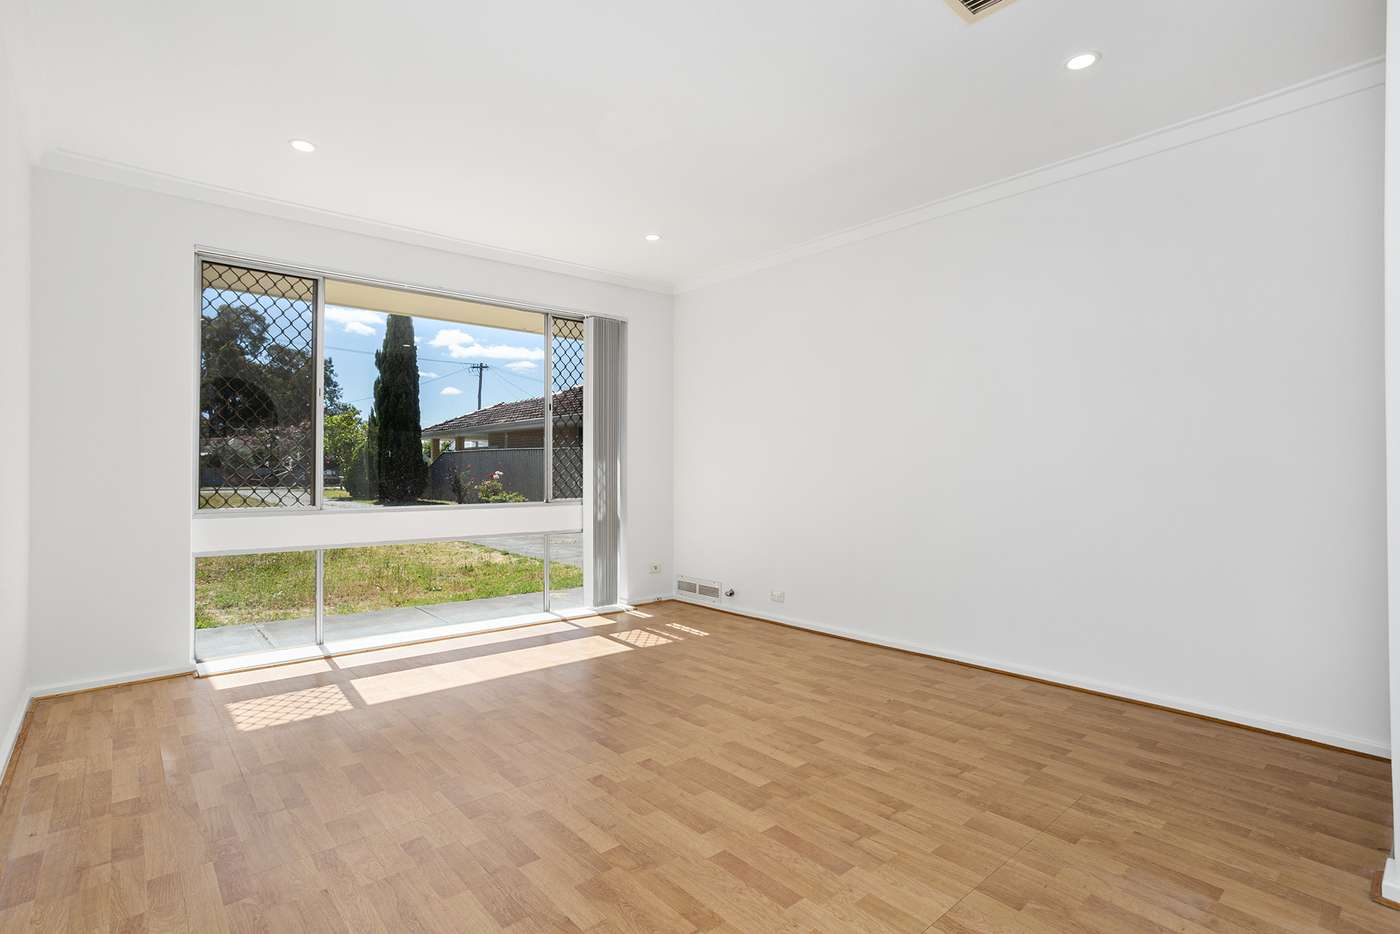 Seventh view of Homely house listing, 459B Coode Street, Dianella WA 6059